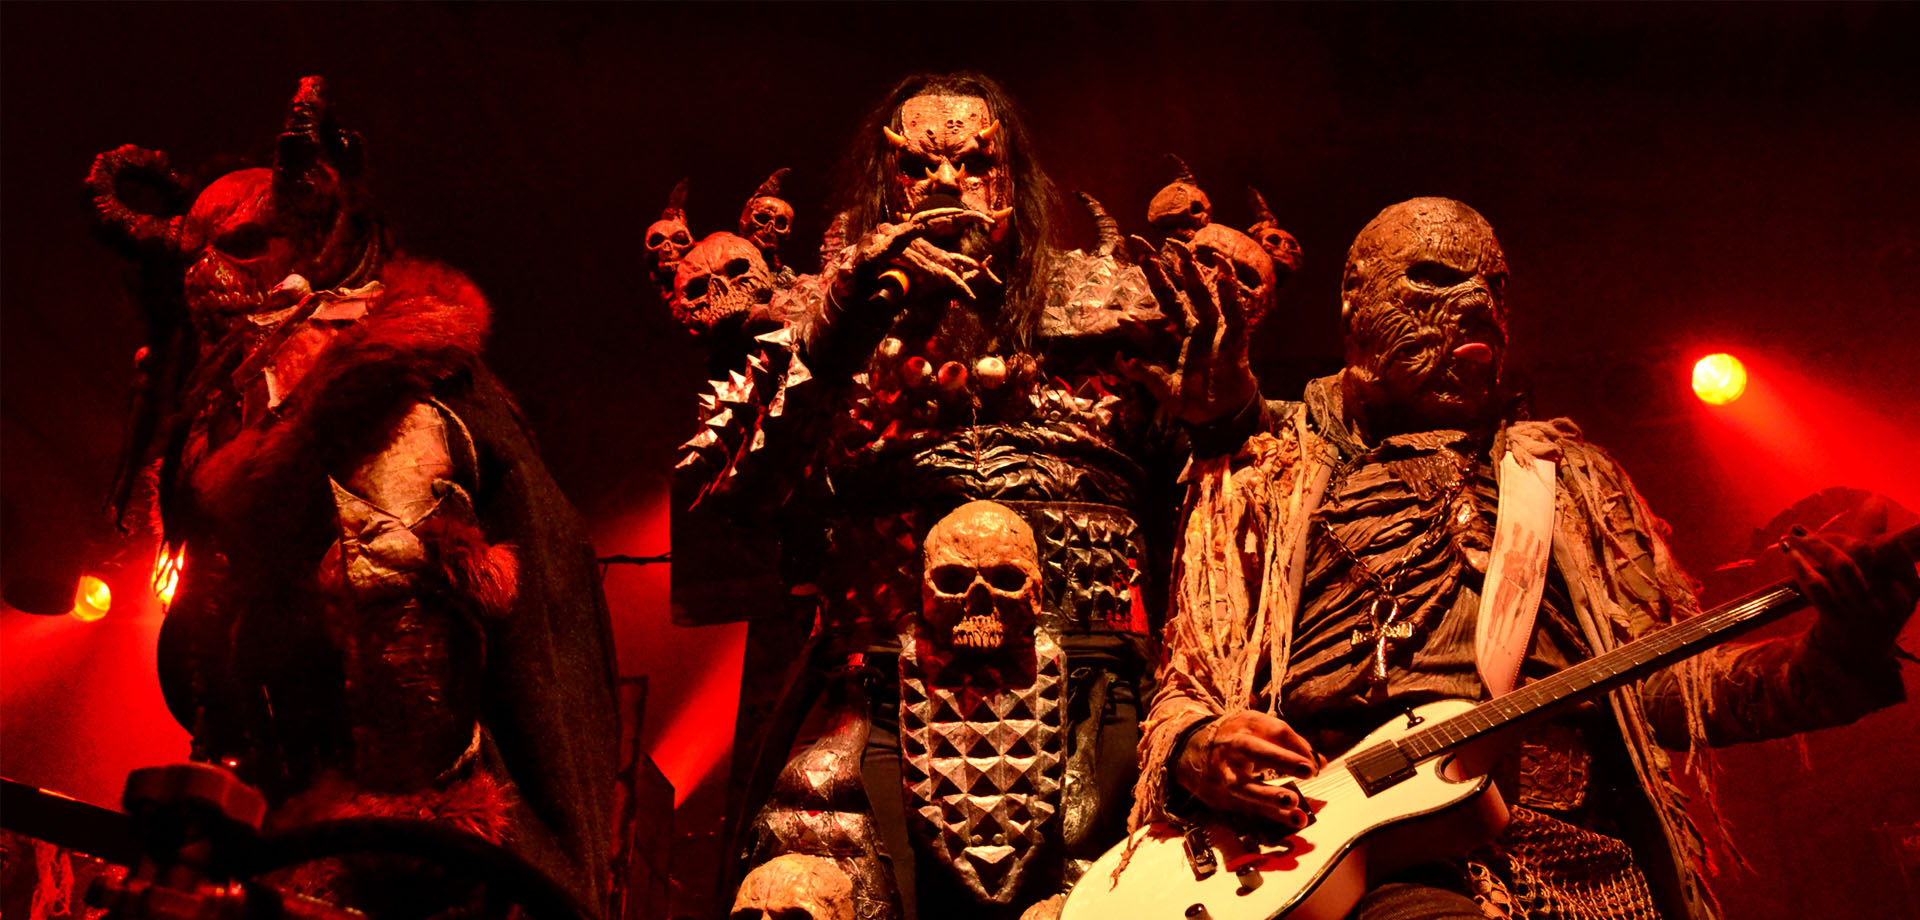 Lordi - Recordead Live - Sextourcism In Z7 (2019) [BDRip 1080p] » Lossless music download | flac